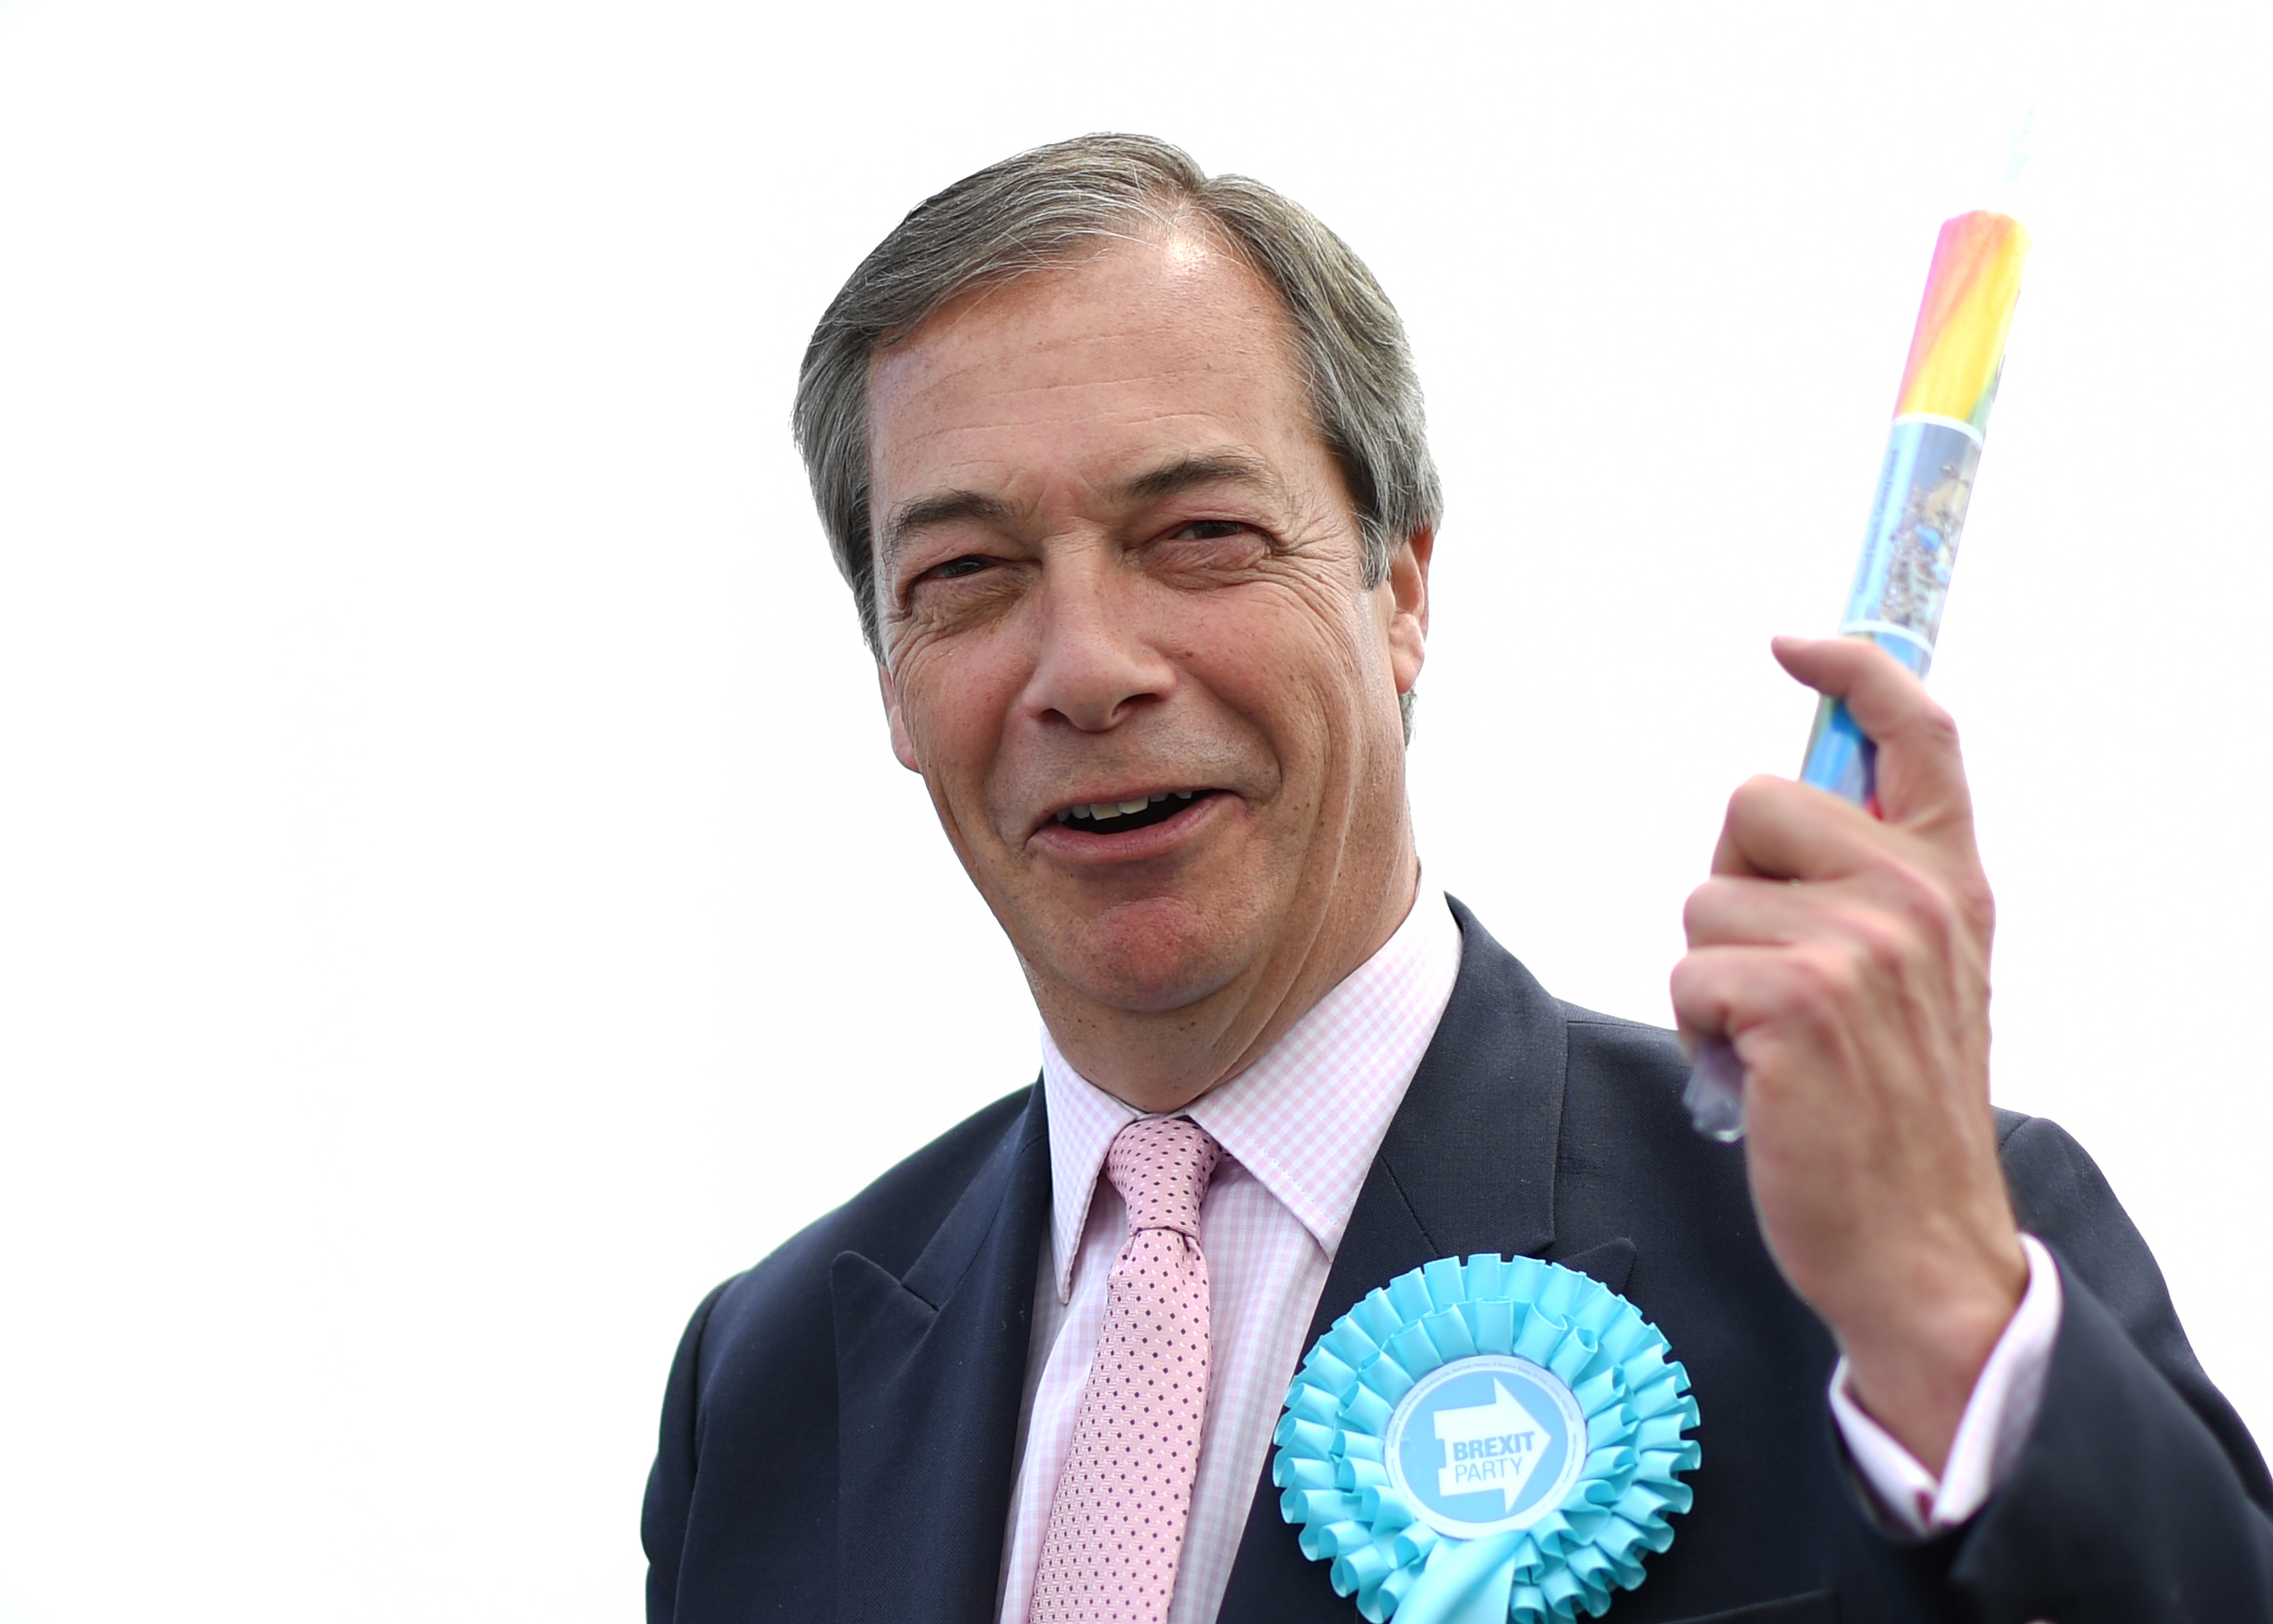 Man charged for throwing milkshake at Brexit Party leader Nigel Farage